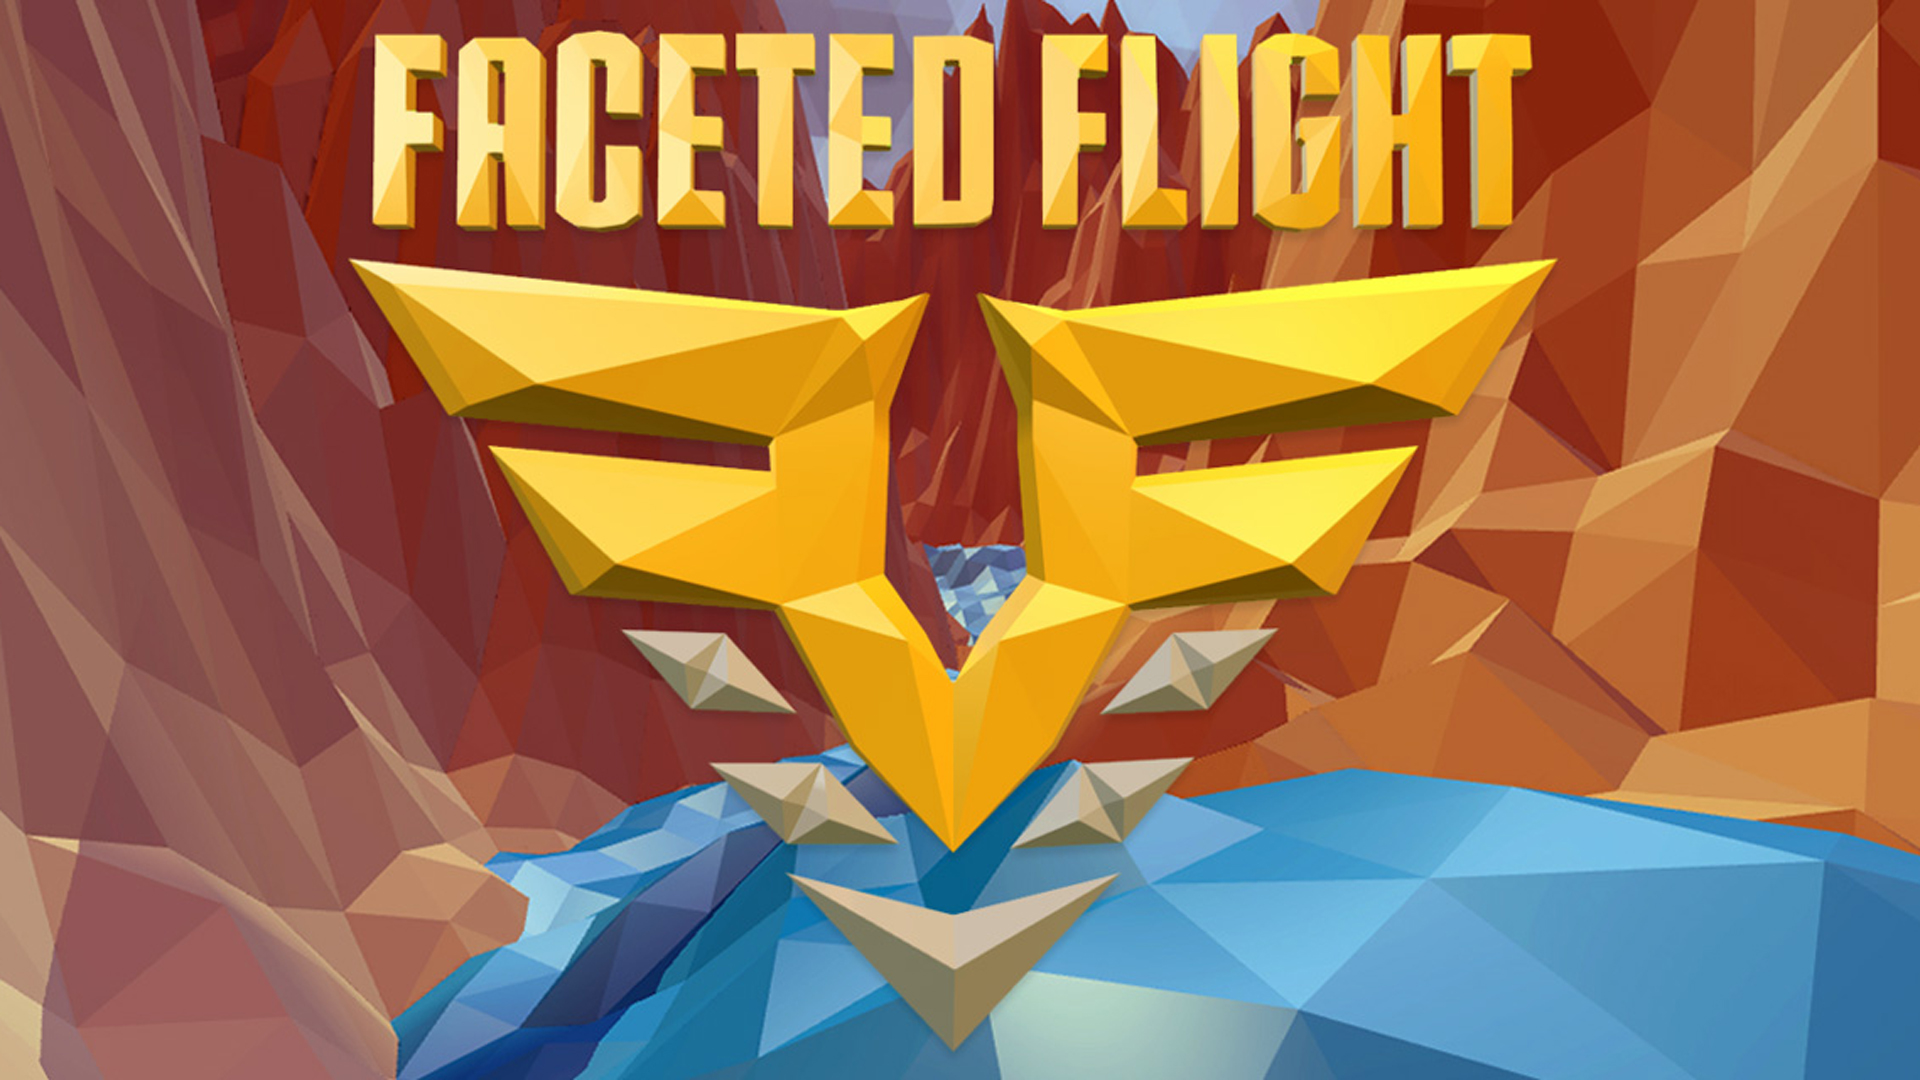 Faceted Flight: Canyon Runner